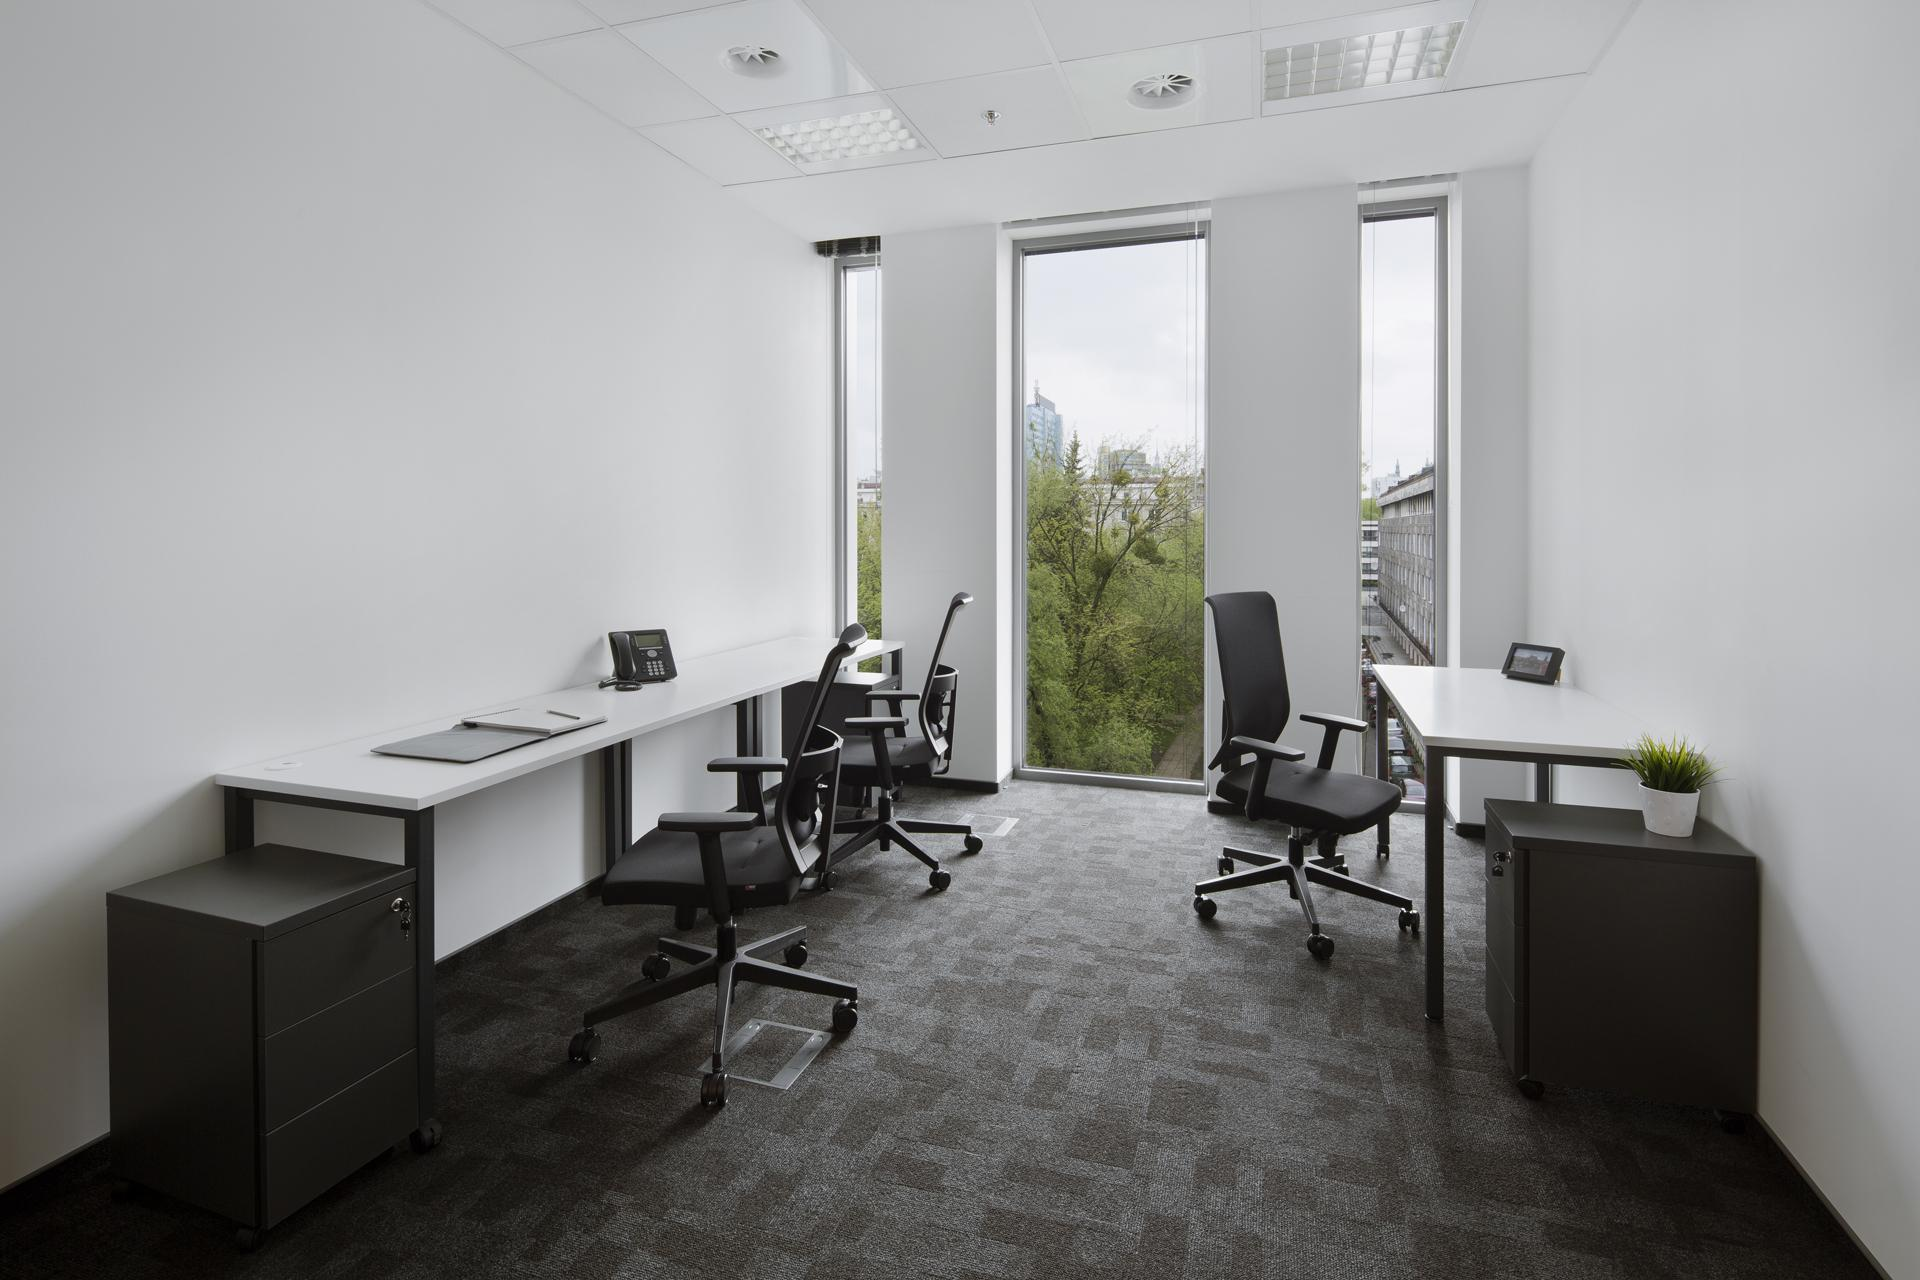 Office for 2 pers. in CitySpace Plac Unii